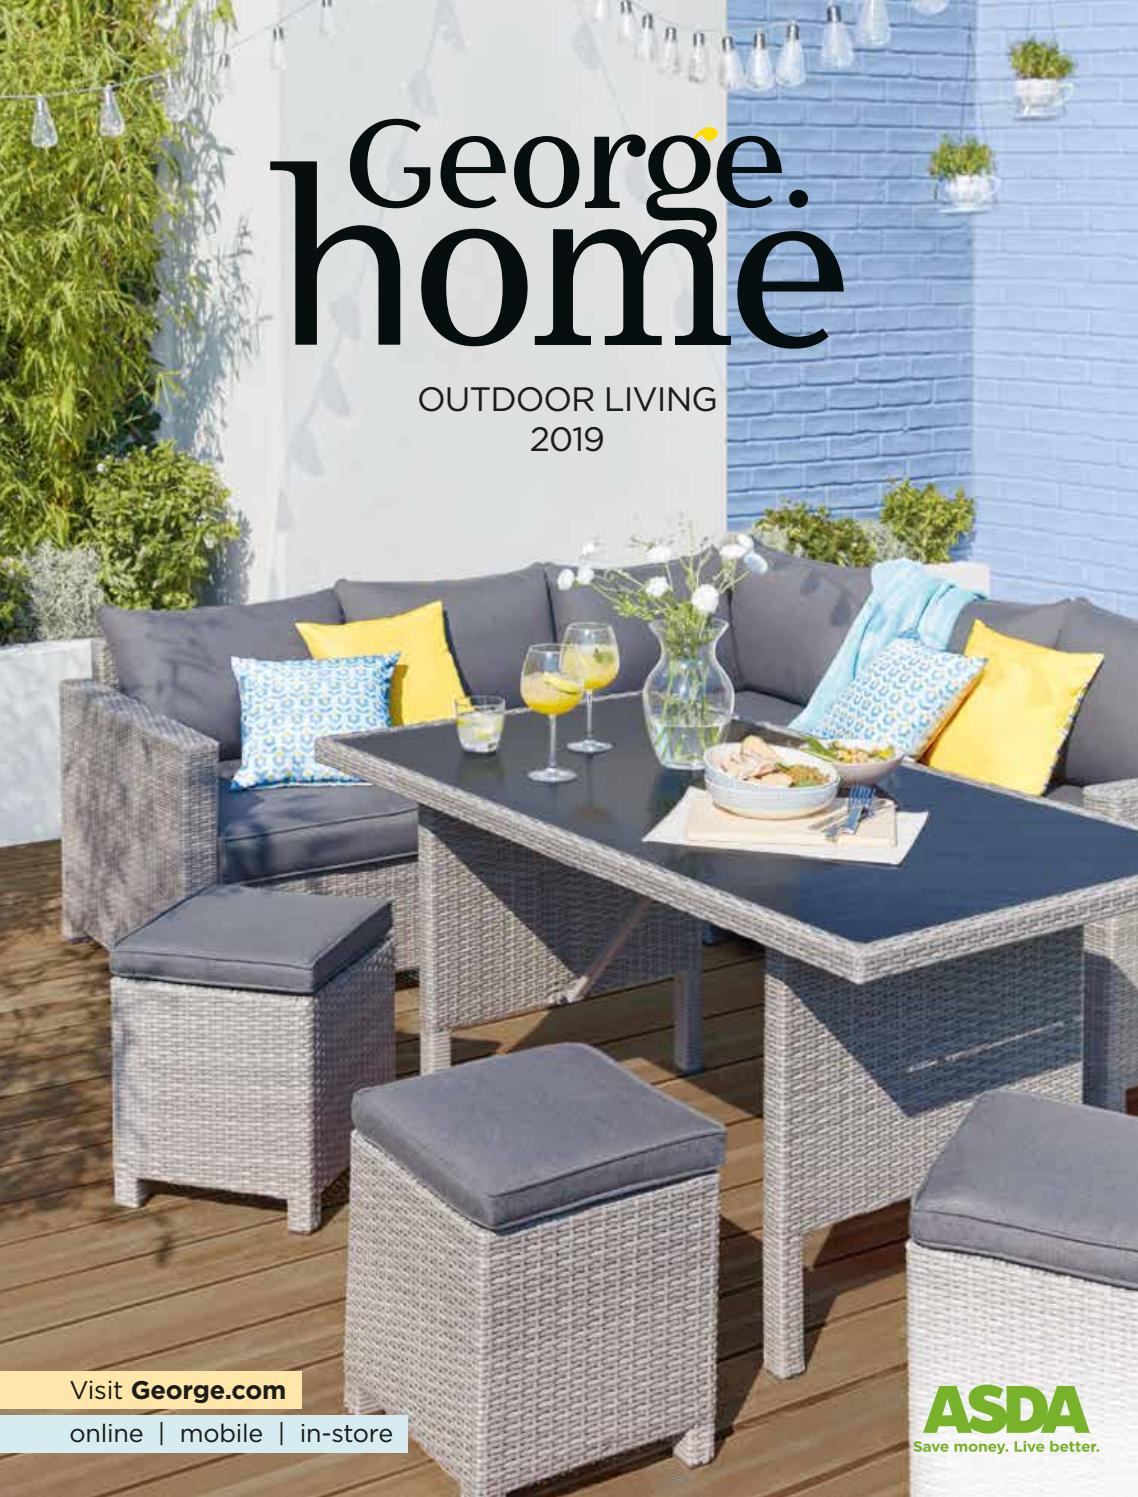 George Home Outdoor Living Catalogue 8 by Asda - issuu